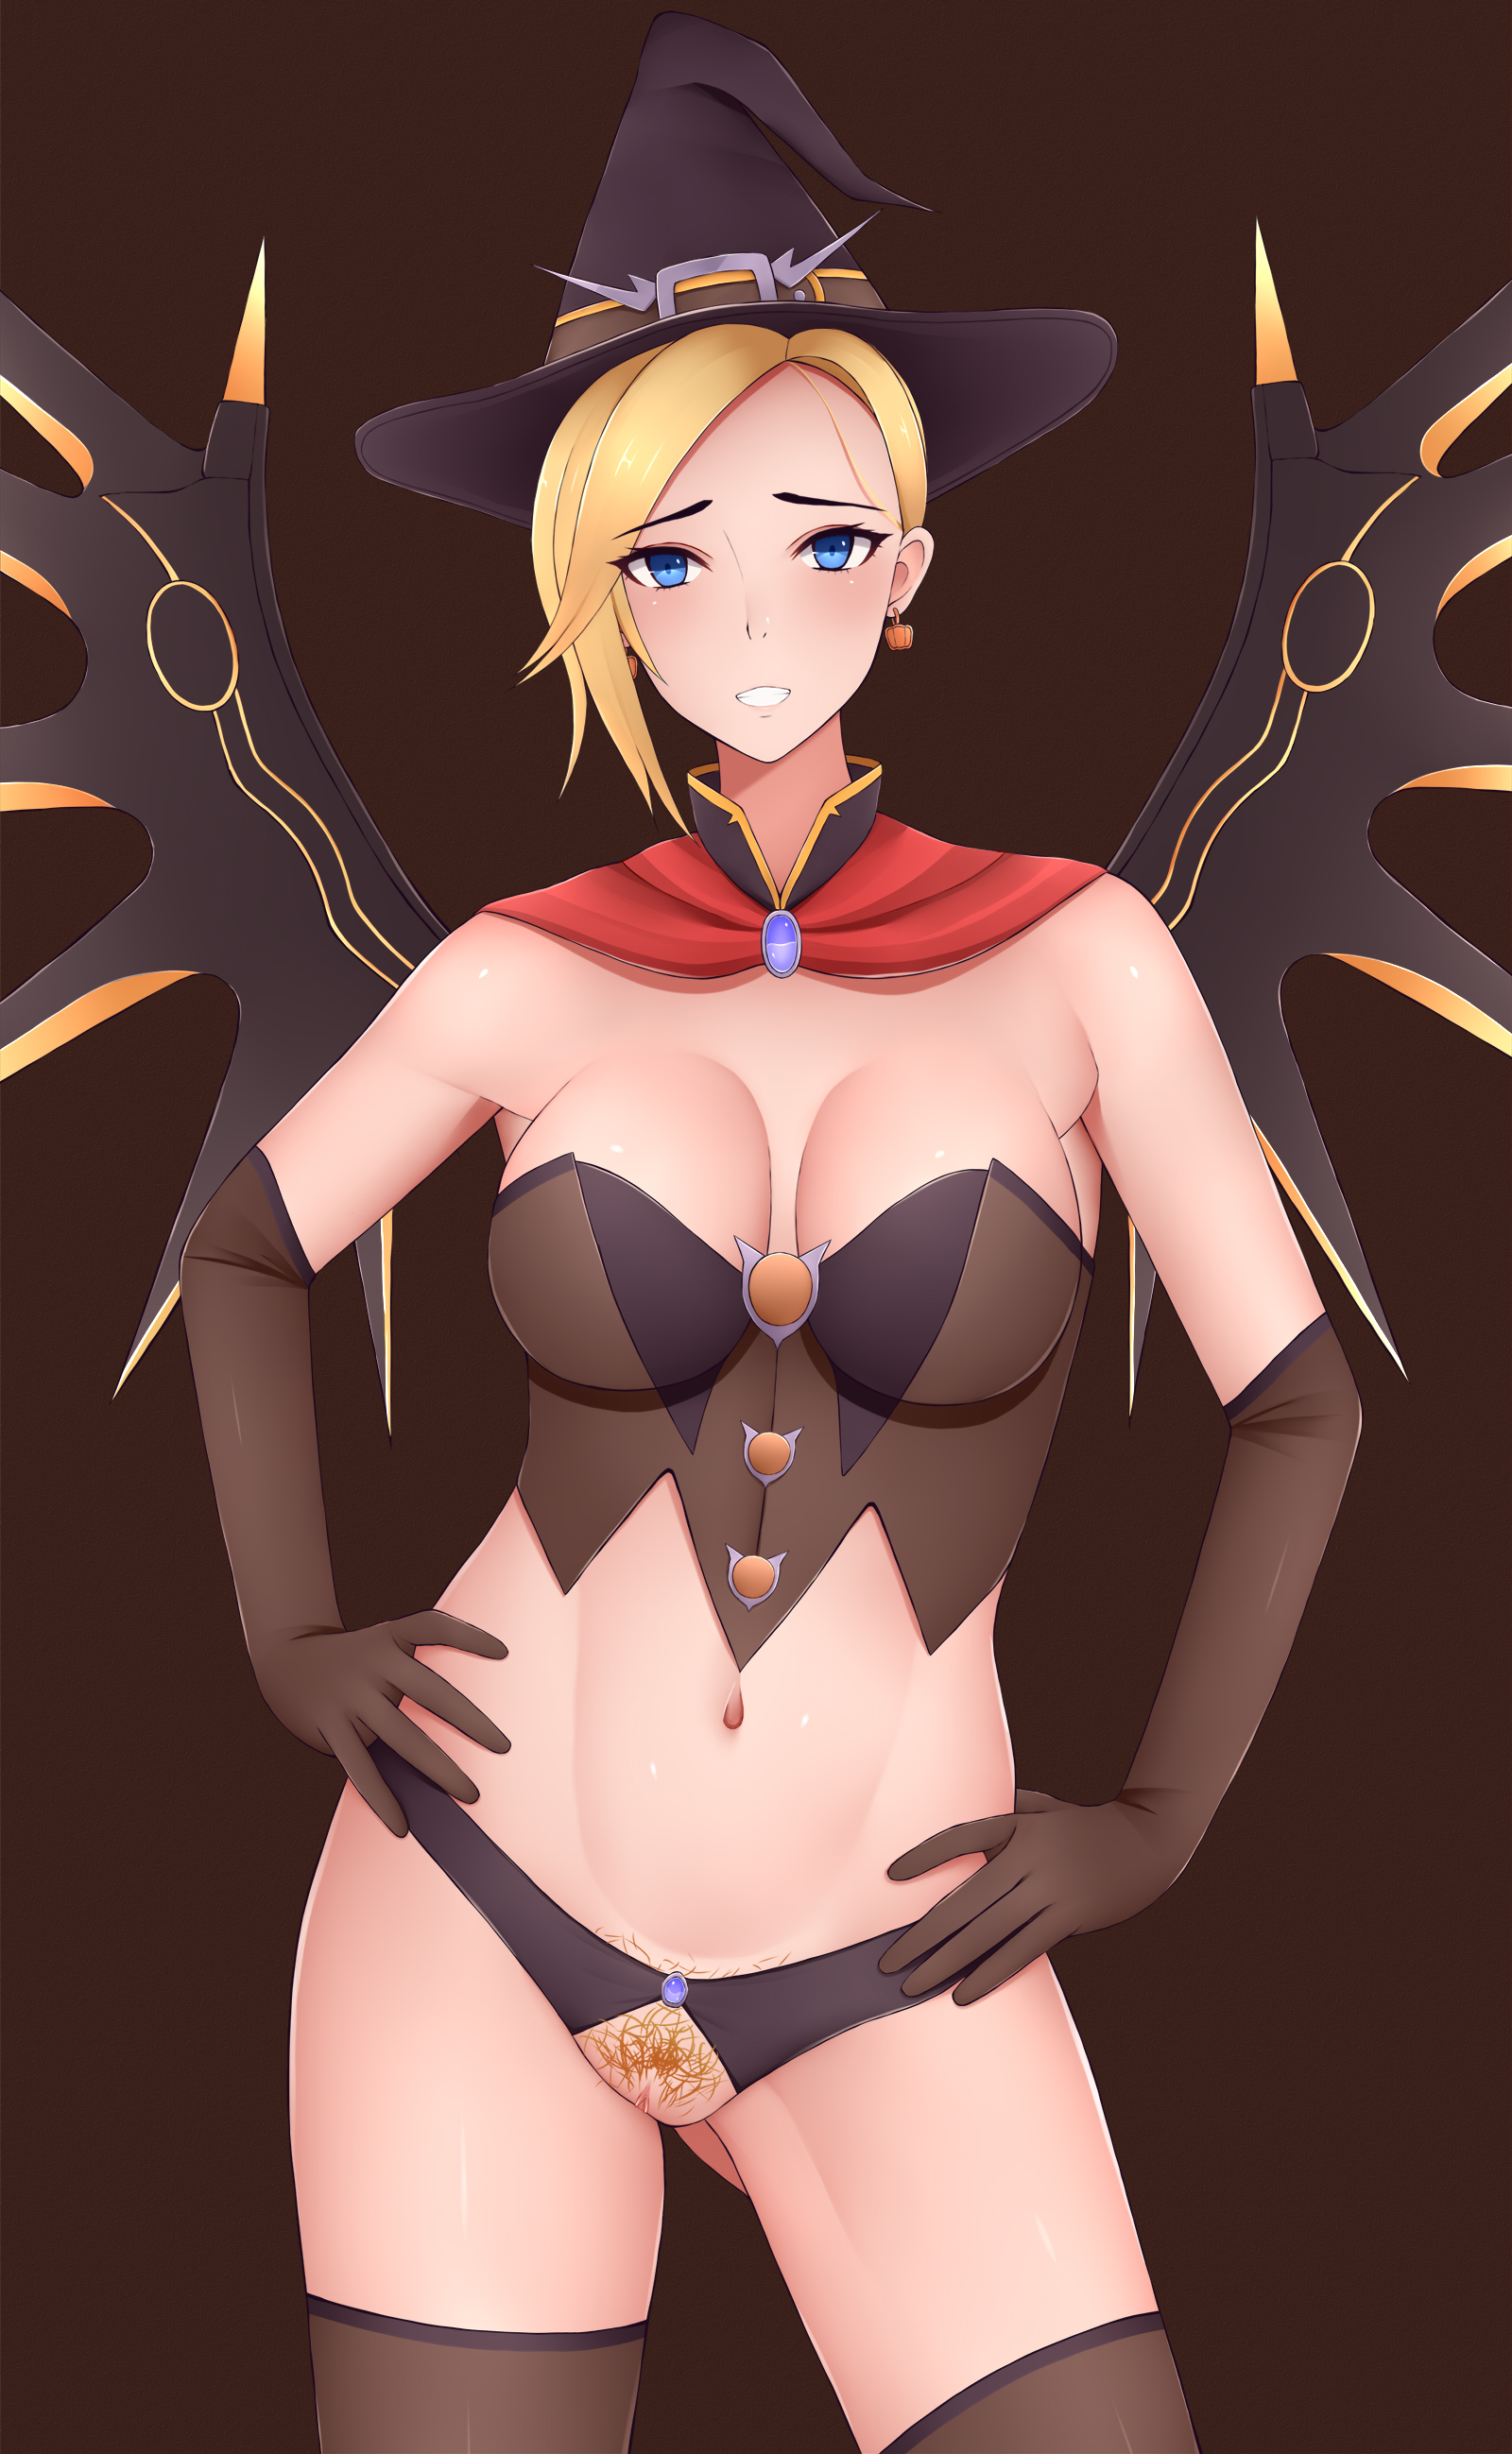 2391272 - Halloween Mercy Overlook hezyu